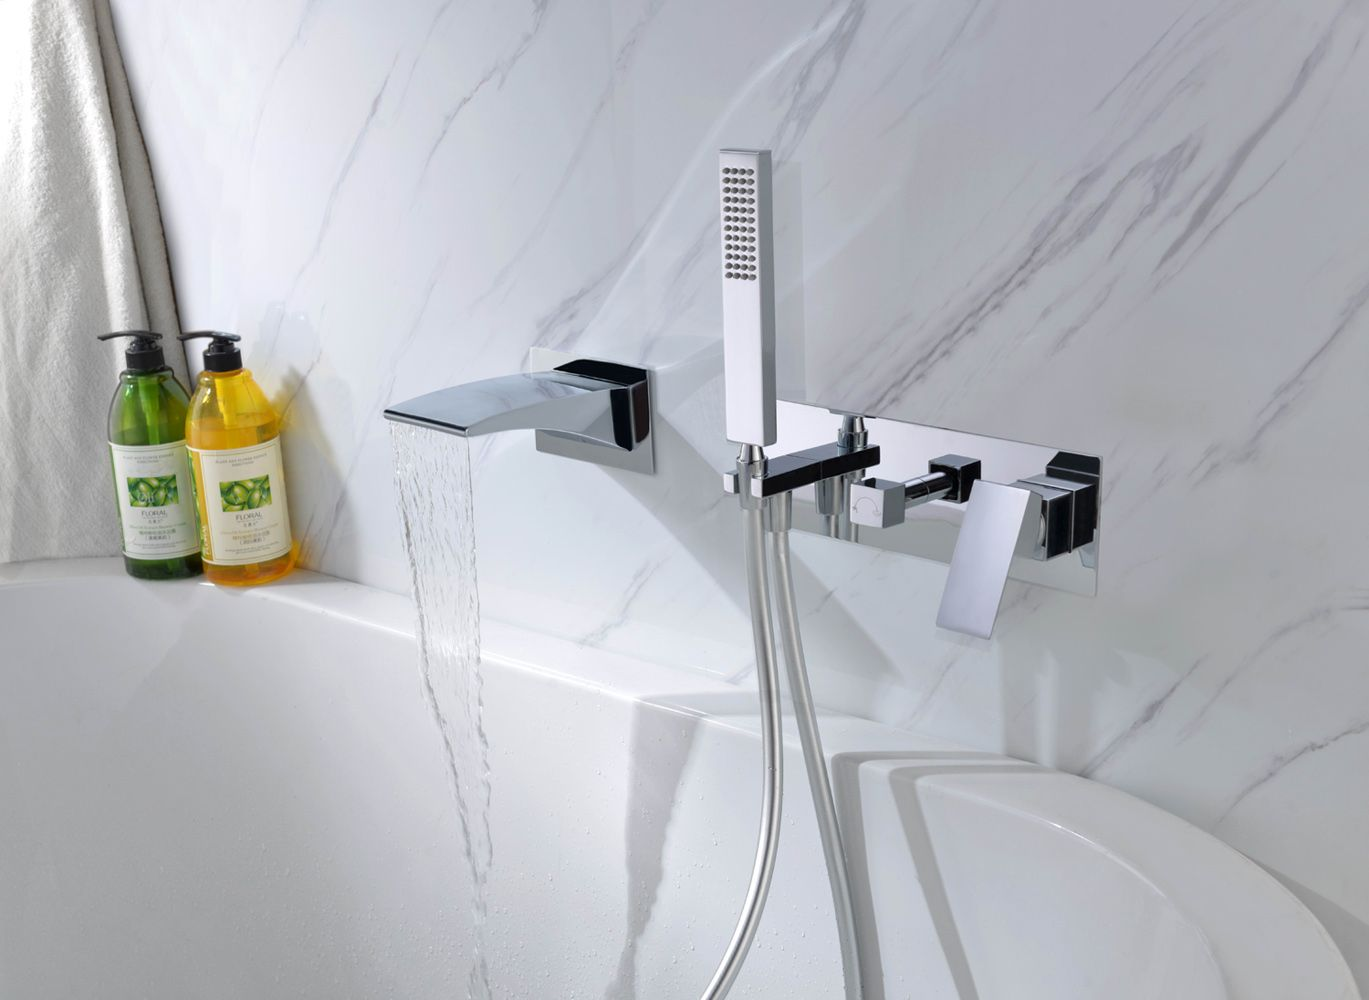 SUMERAIN S2121CW wall mounted bathtub faucet with hand held shower ...